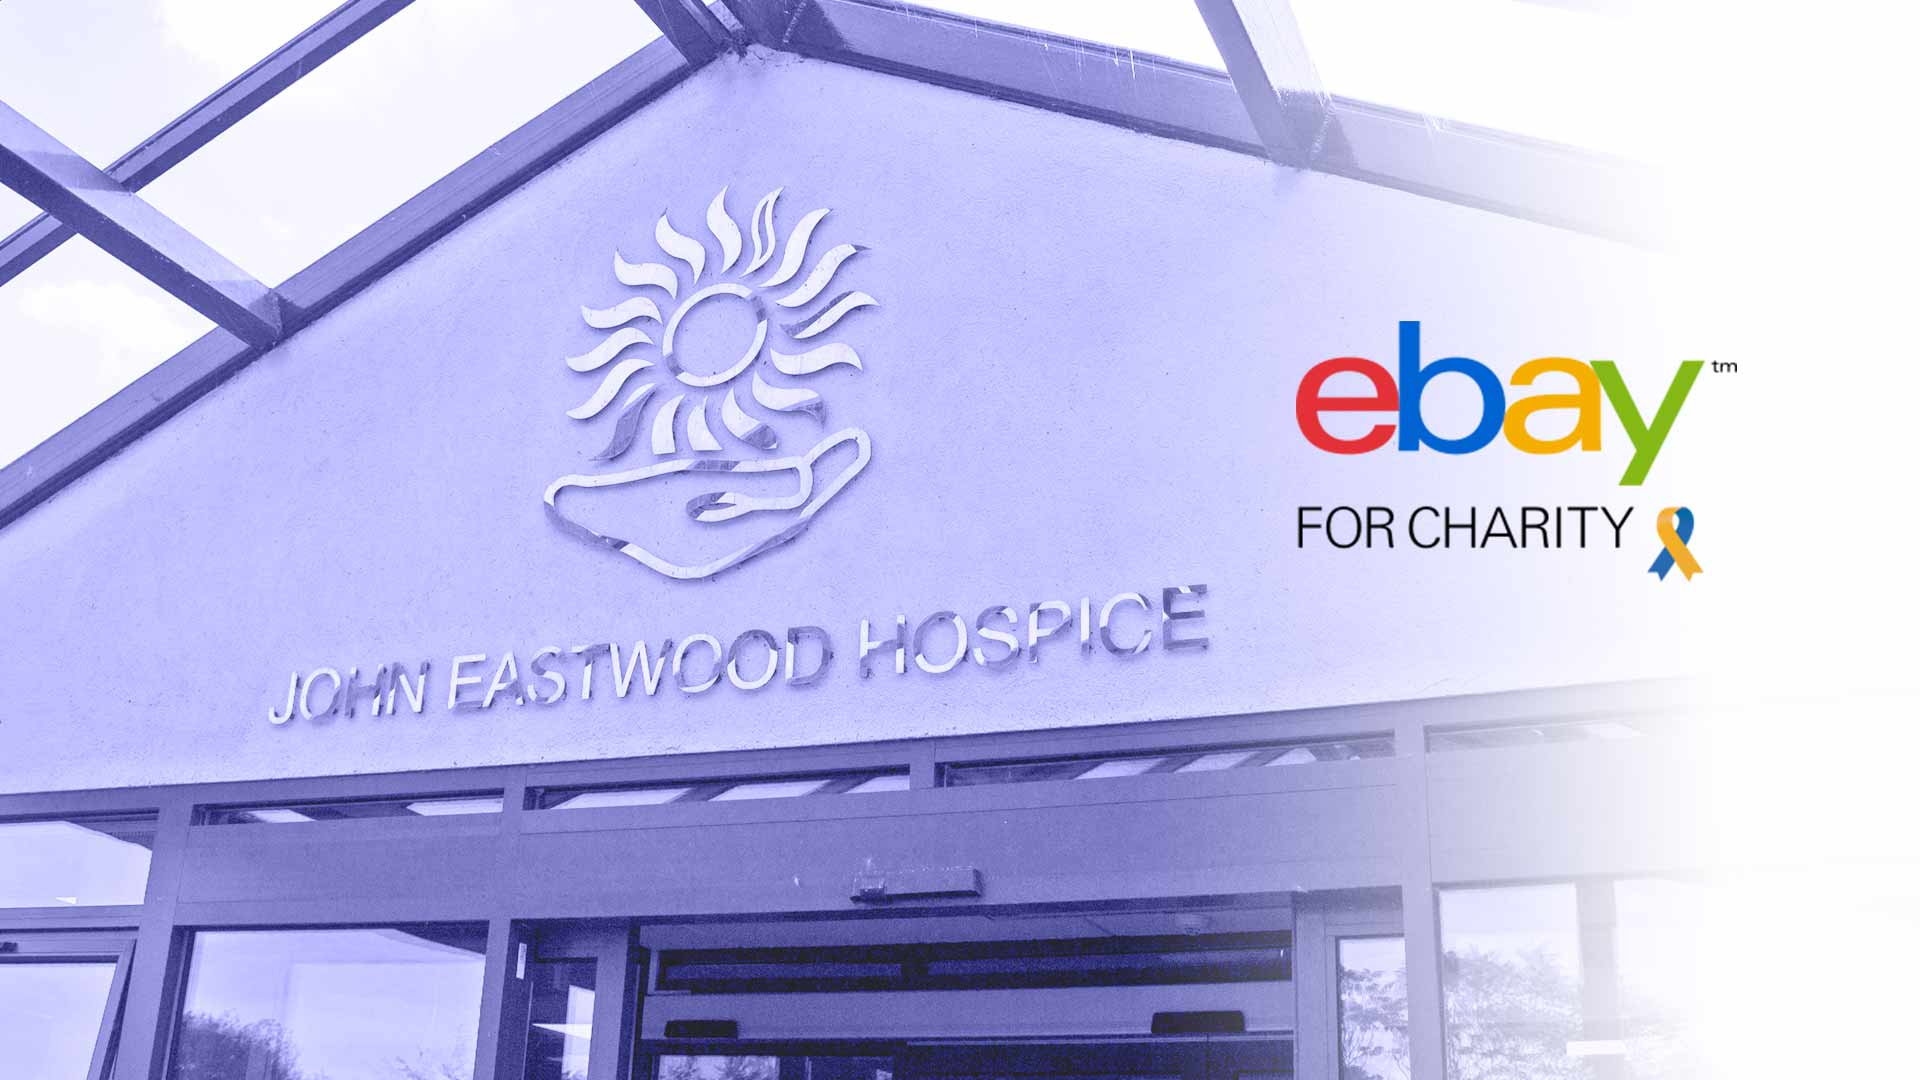 Ebay For Charity John Eastwood Hospice Trust